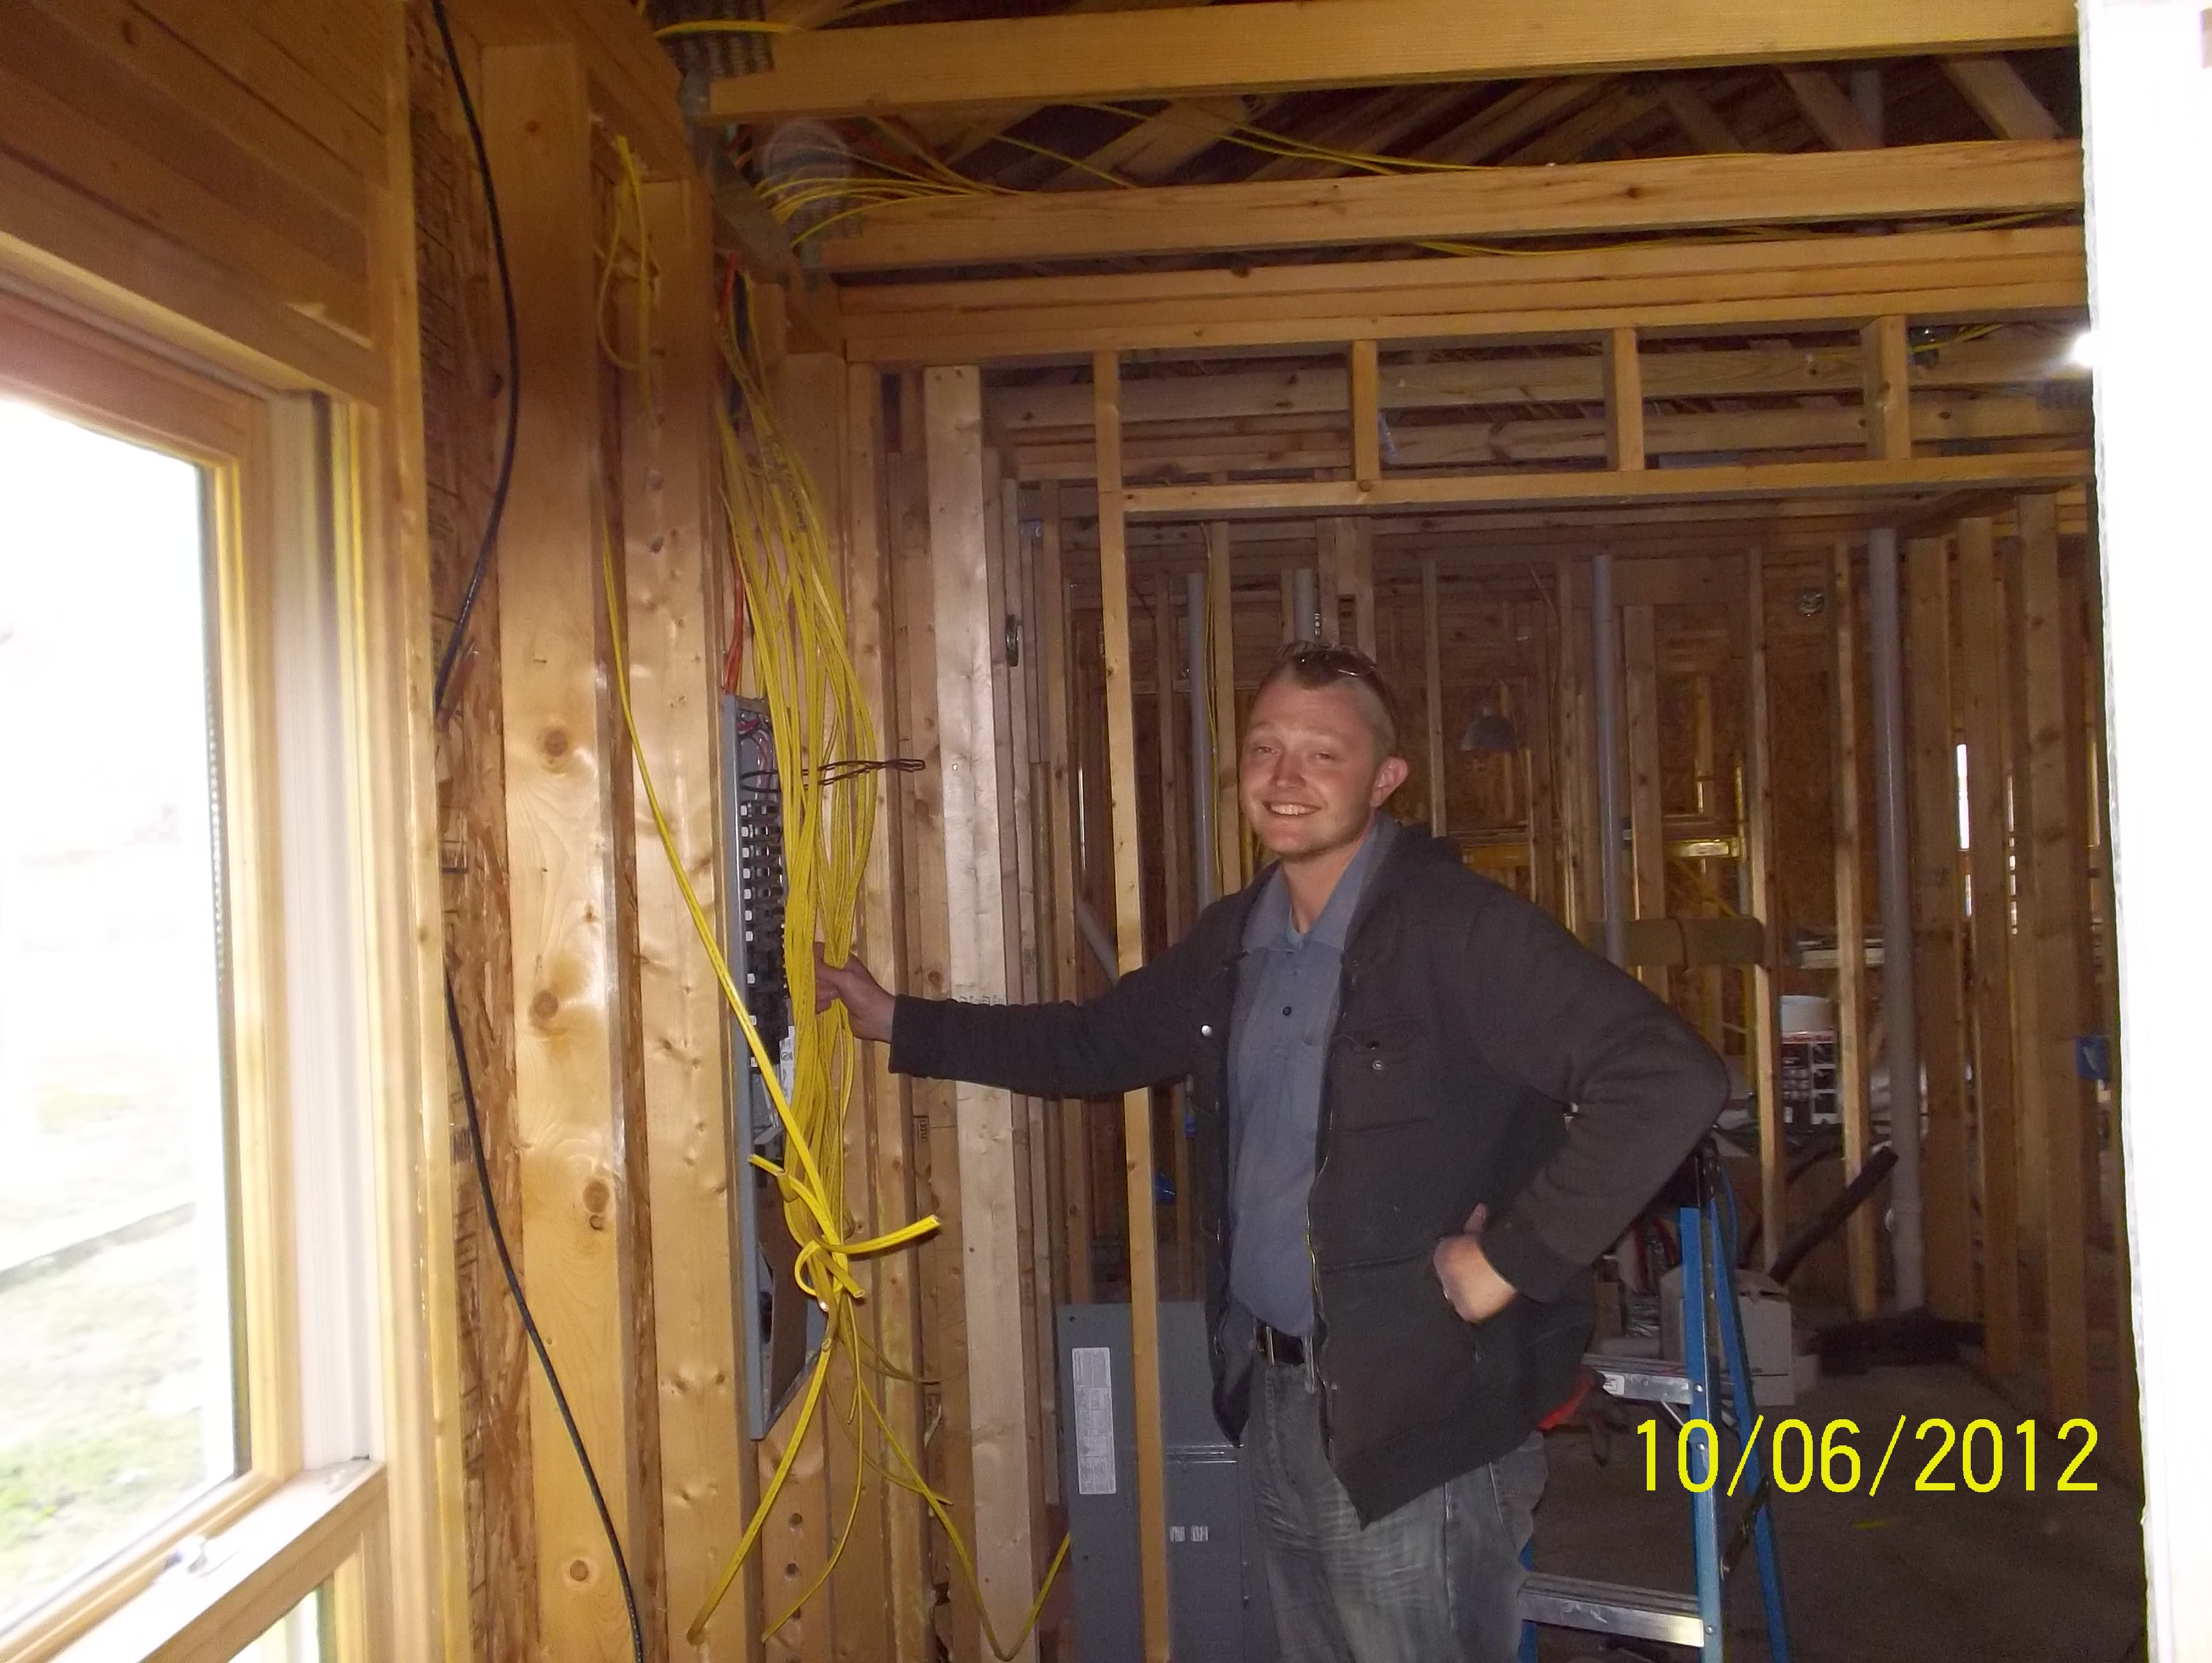 Rex Modglin & union brothers of IBEW Local 538 donate their time and expertise to wire Sean's home